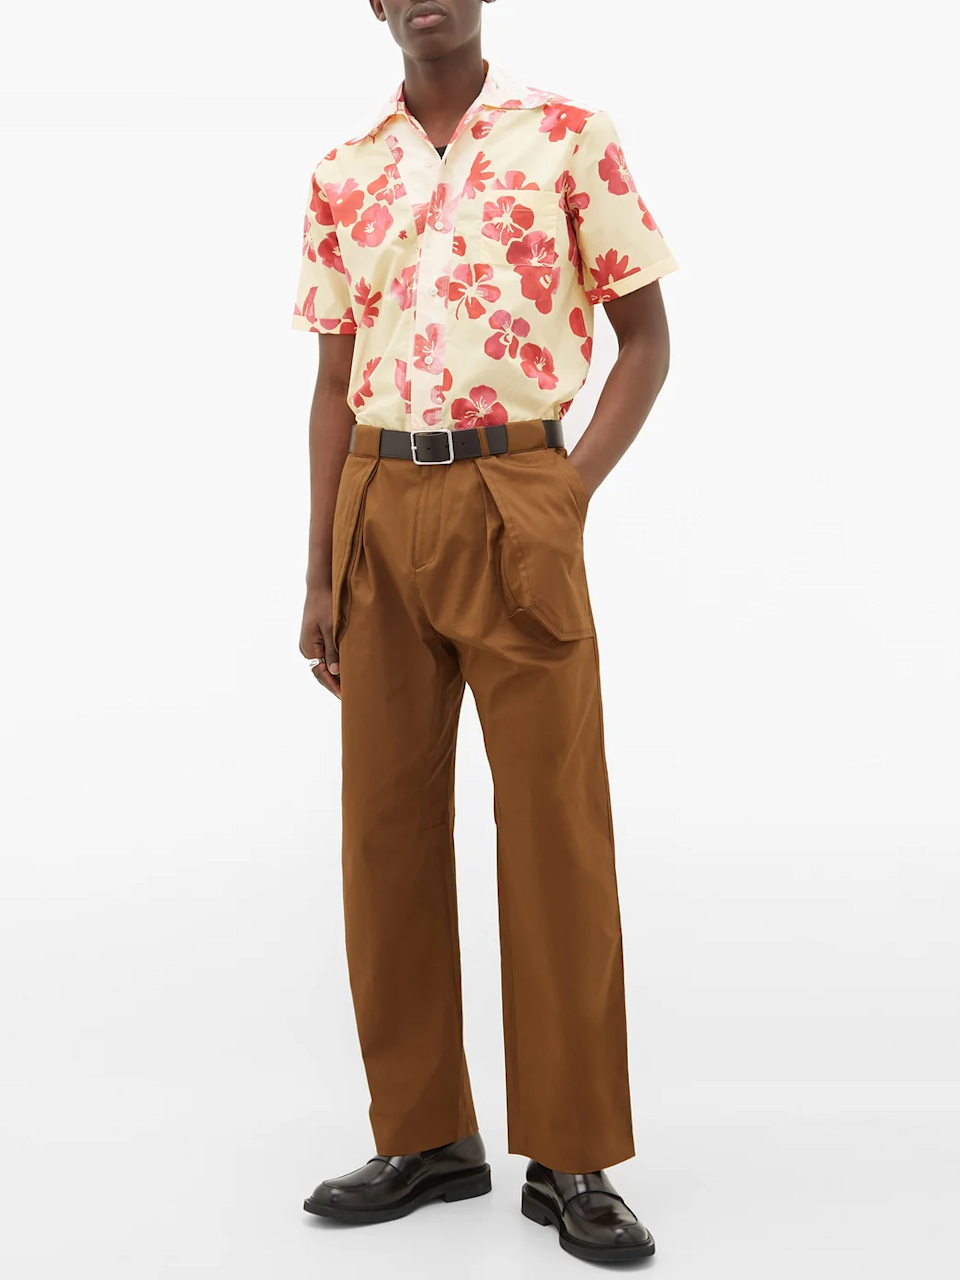 """A tropical shirt is a staple in every dad's wardrobe. Make your dad's stand out in the crowd with this buttery alternative courtesy of British menswear label <a href=""""https://walesbonner.net/"""" rel=""""nofollow noopener"""" target=""""_blank"""" data-ylk=""""slk:Wales Bonner"""" class=""""link rapid-noclick-resp"""">Wales Bonner</a>. <br> <br> <strong>Wales Bonner</strong> Hibiscus Print Cuban Collar Cotton Poplin Shirt, $, available at <a href=""""https://go.skimresources.com/?id=30283X879131&url=https%3A%2F%2Fwww.matchesfashion.com%2Fus%2Fproducts%2FWales-Bonner-Hibiscus-print-Cuban-collar-cotton-poplin-shirt-1323259"""" rel=""""nofollow noopener"""" target=""""_blank"""" data-ylk=""""slk:Matches Fashion"""" class=""""link rapid-noclick-resp"""">Matches Fashion</a>"""